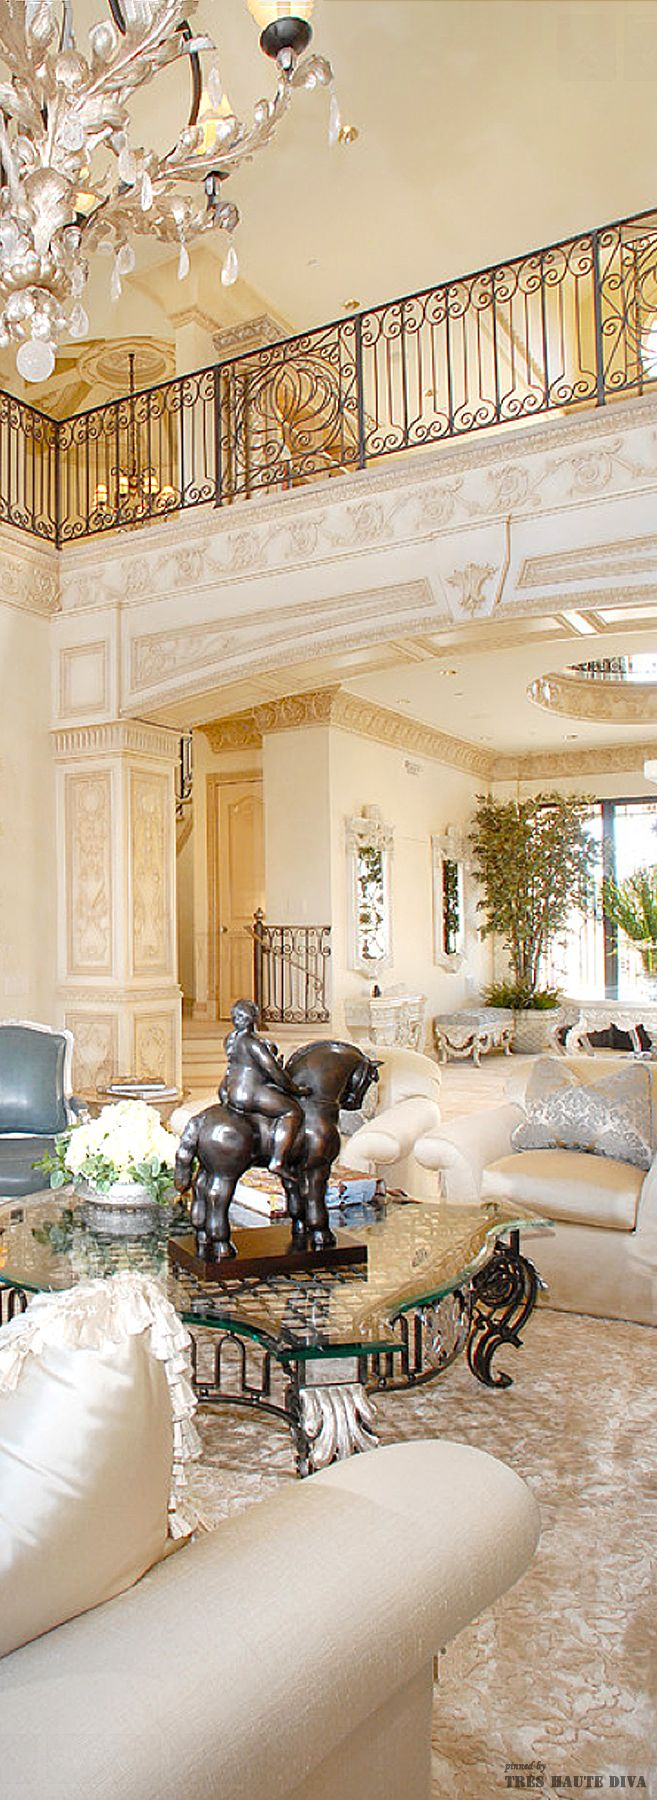 Texas chateau home decor